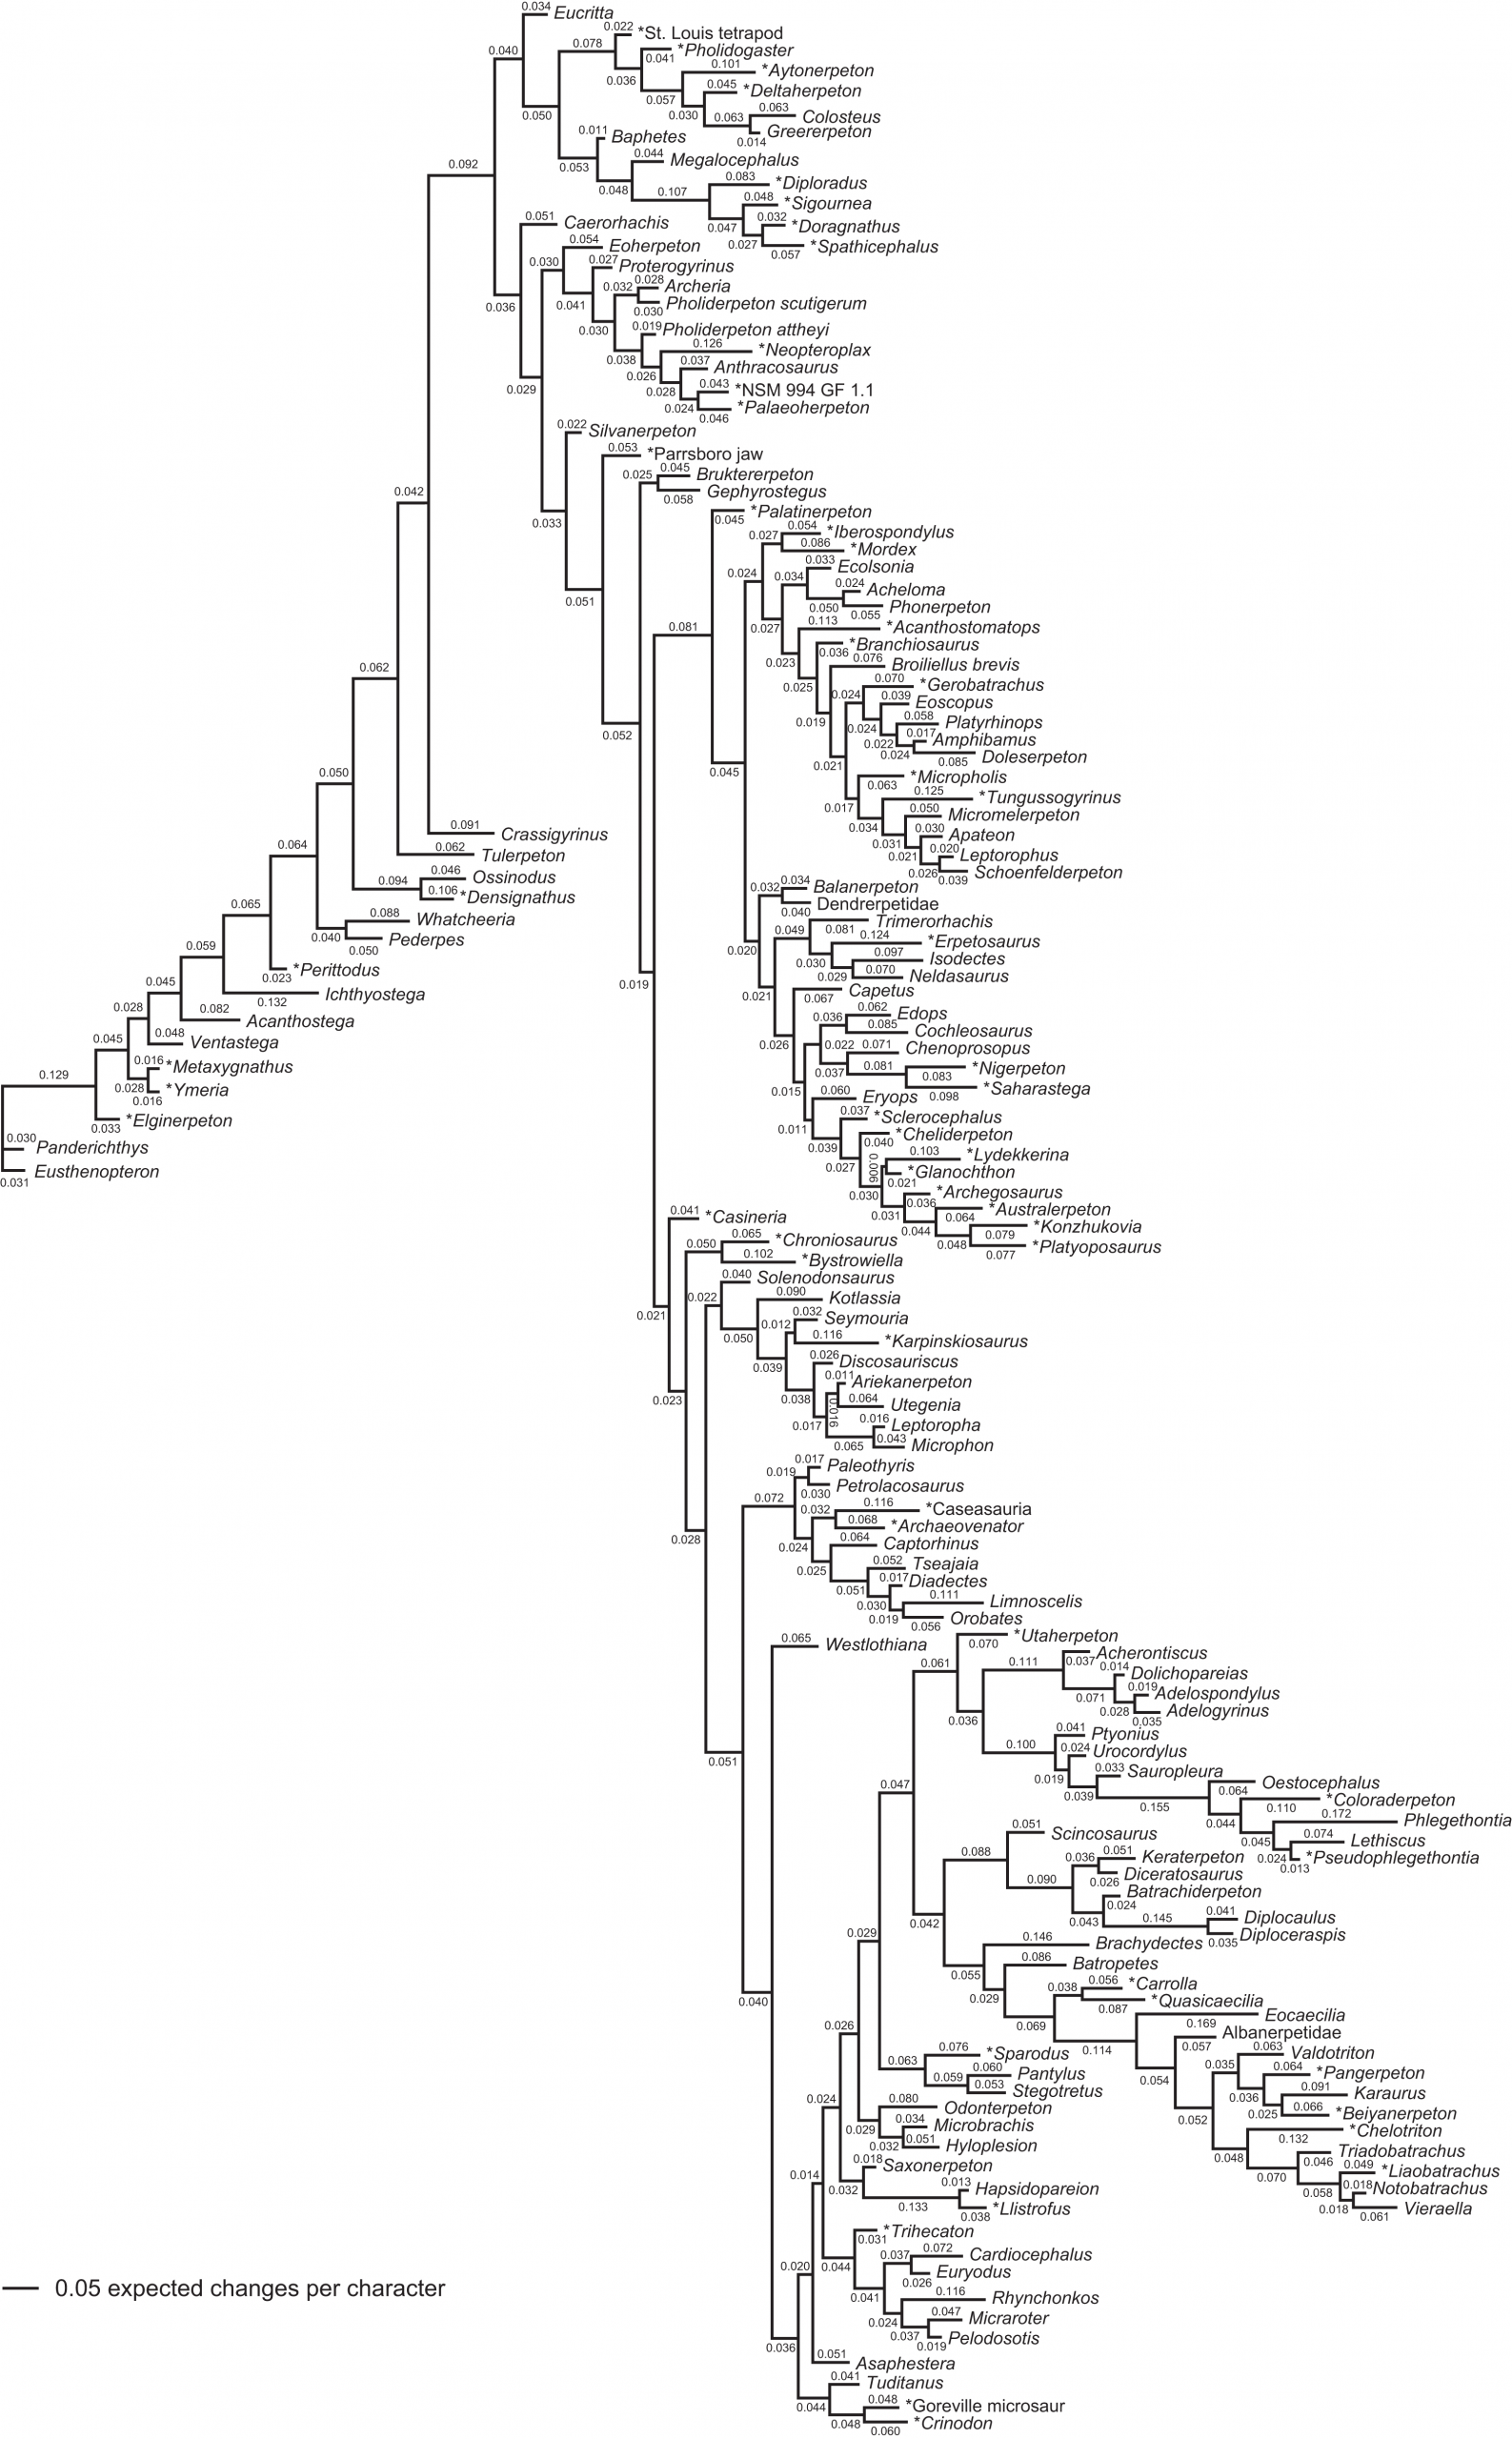 Phylogeny Of Paleozoic Limbed Vertebrates Reassessed Through pour Revision Grande Section